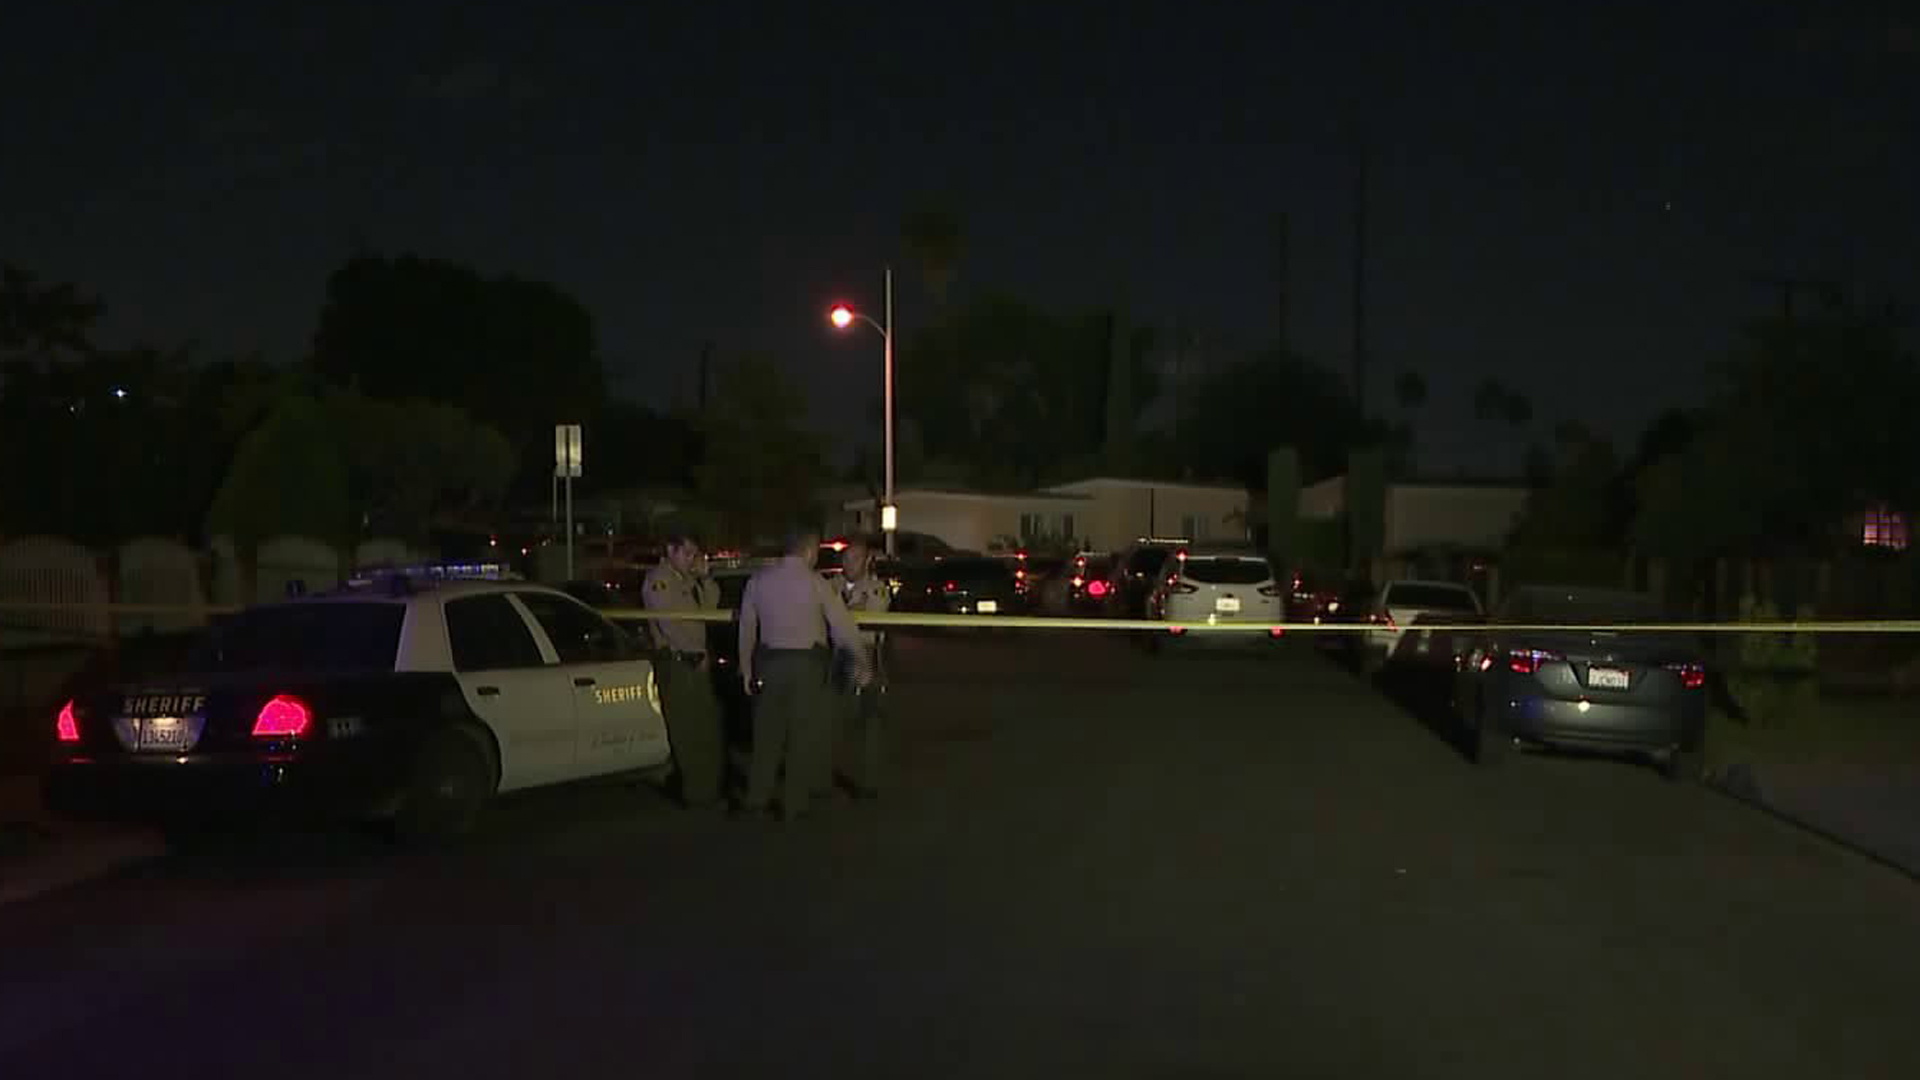 L.A. County Sheriff's deputies at the scene of a fatal deputy-involved shooting Monday night. (Credit: KTLA)